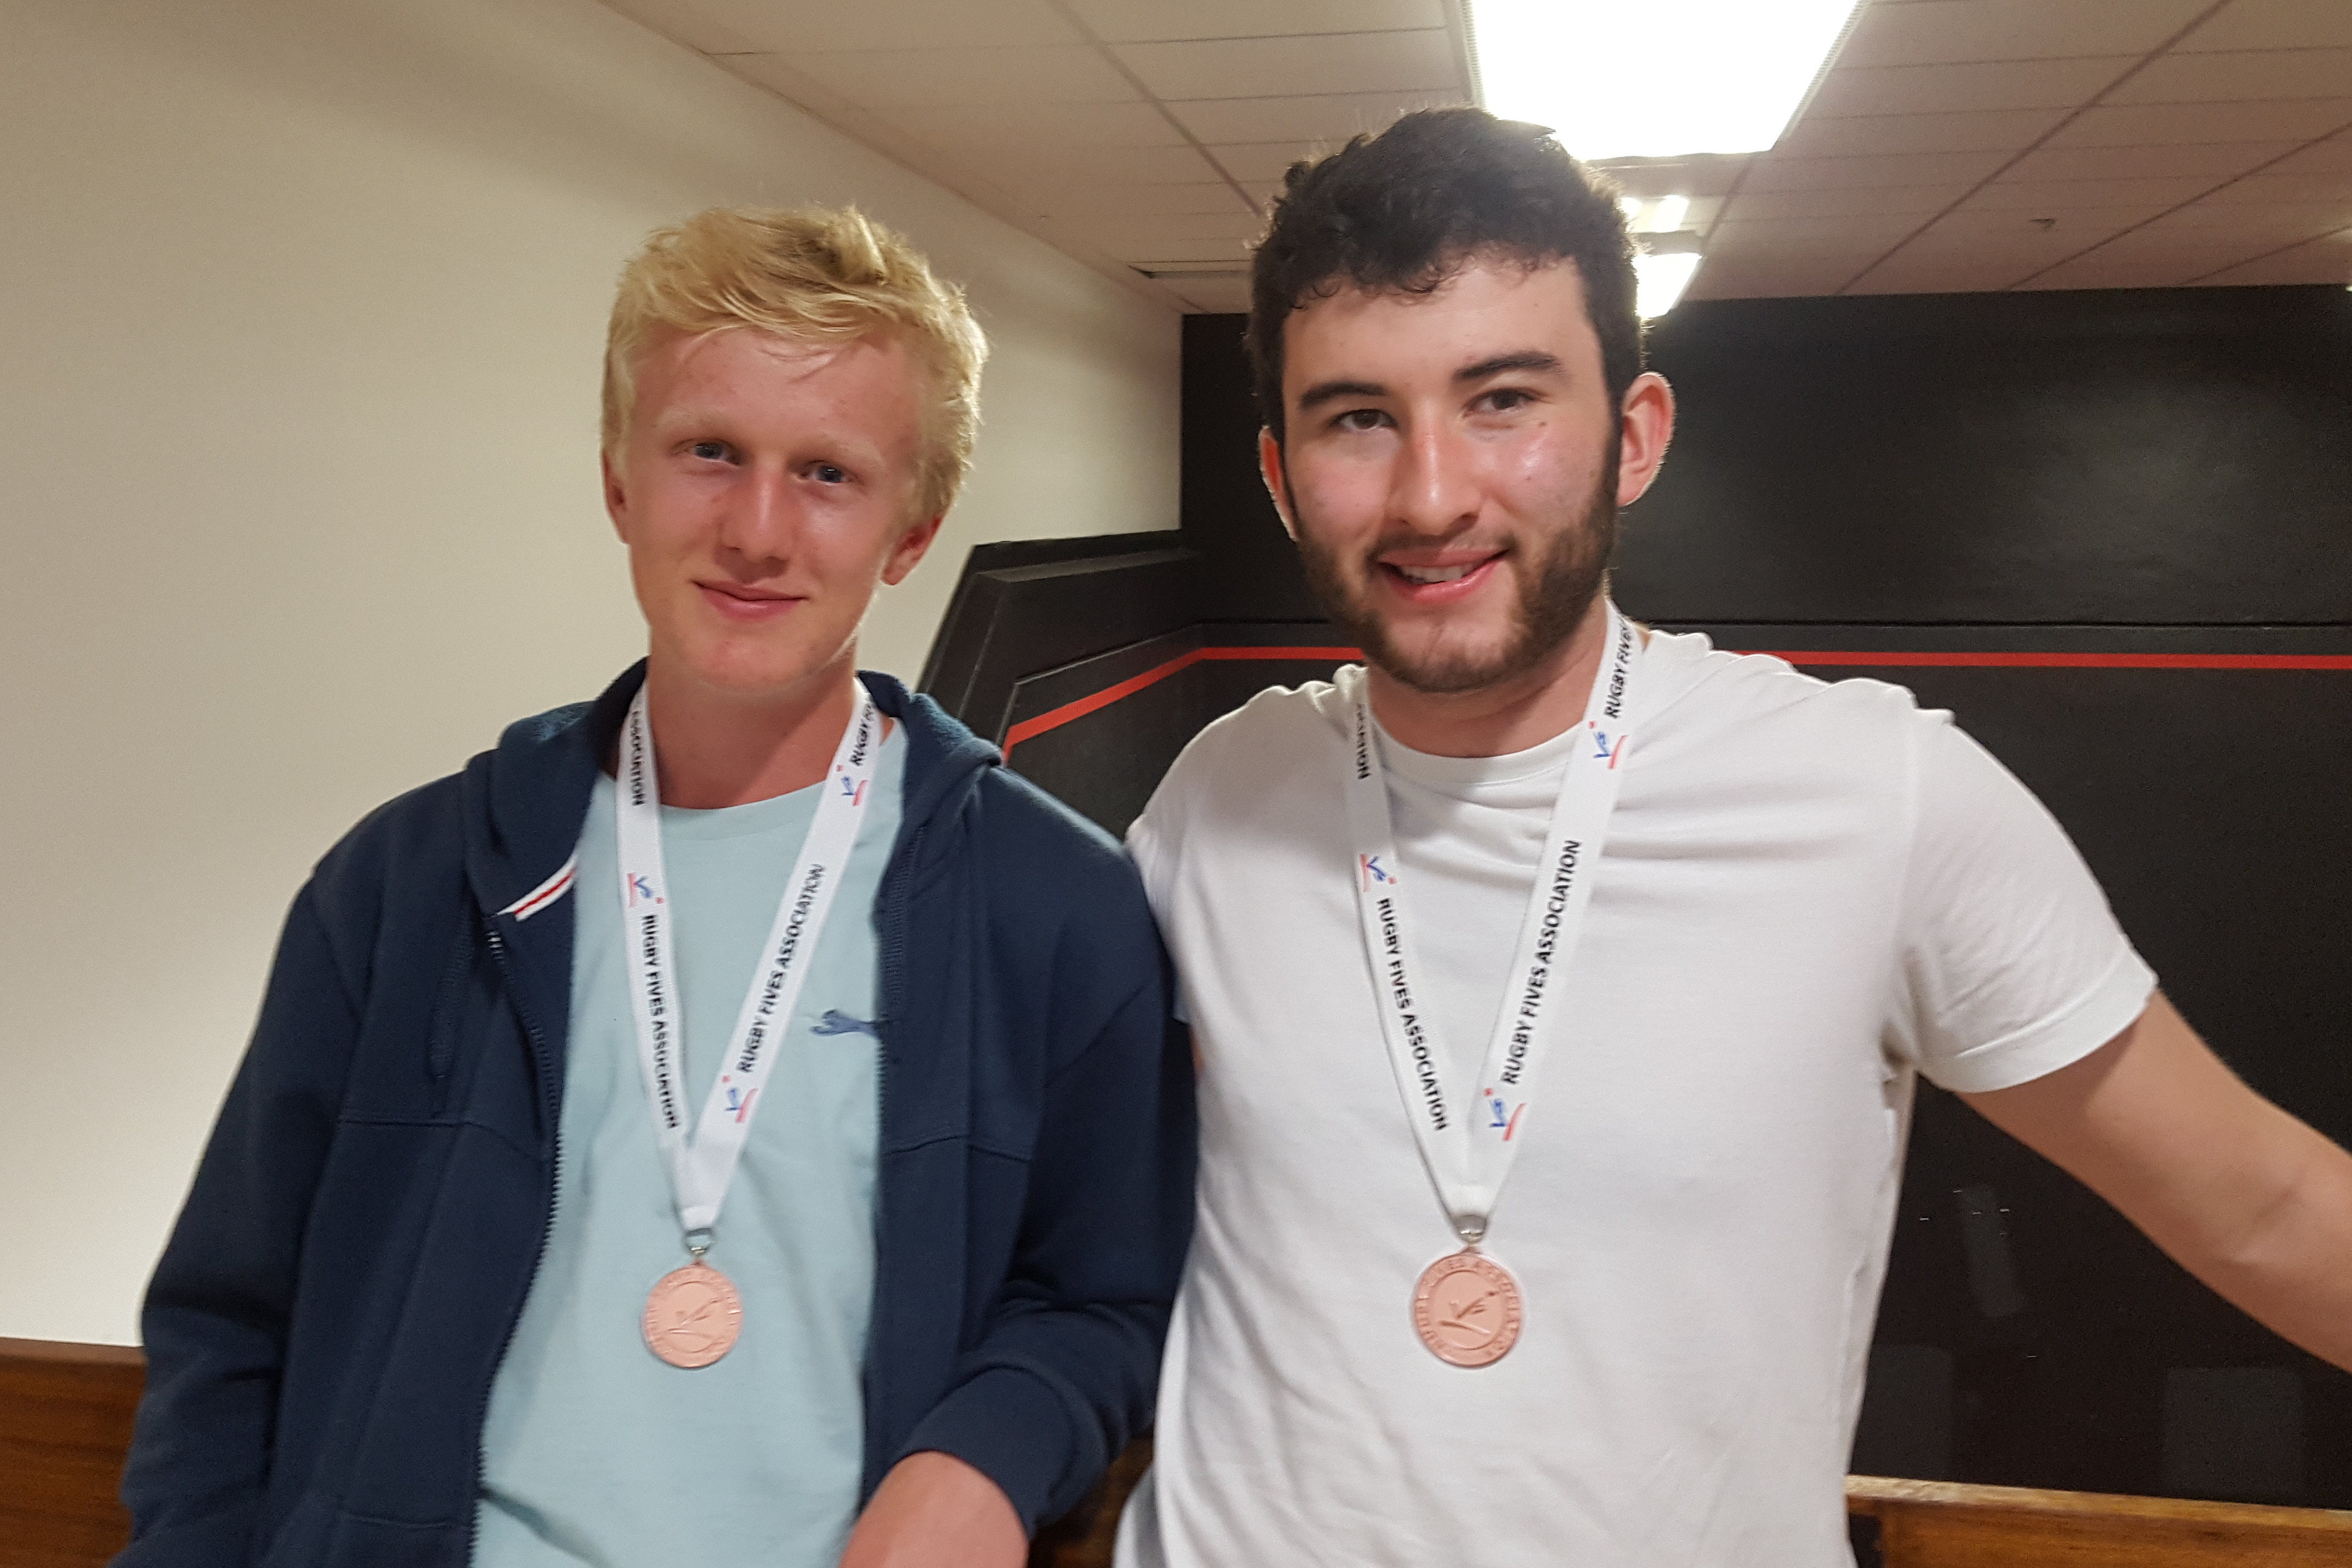 The young Doubles Plate winners